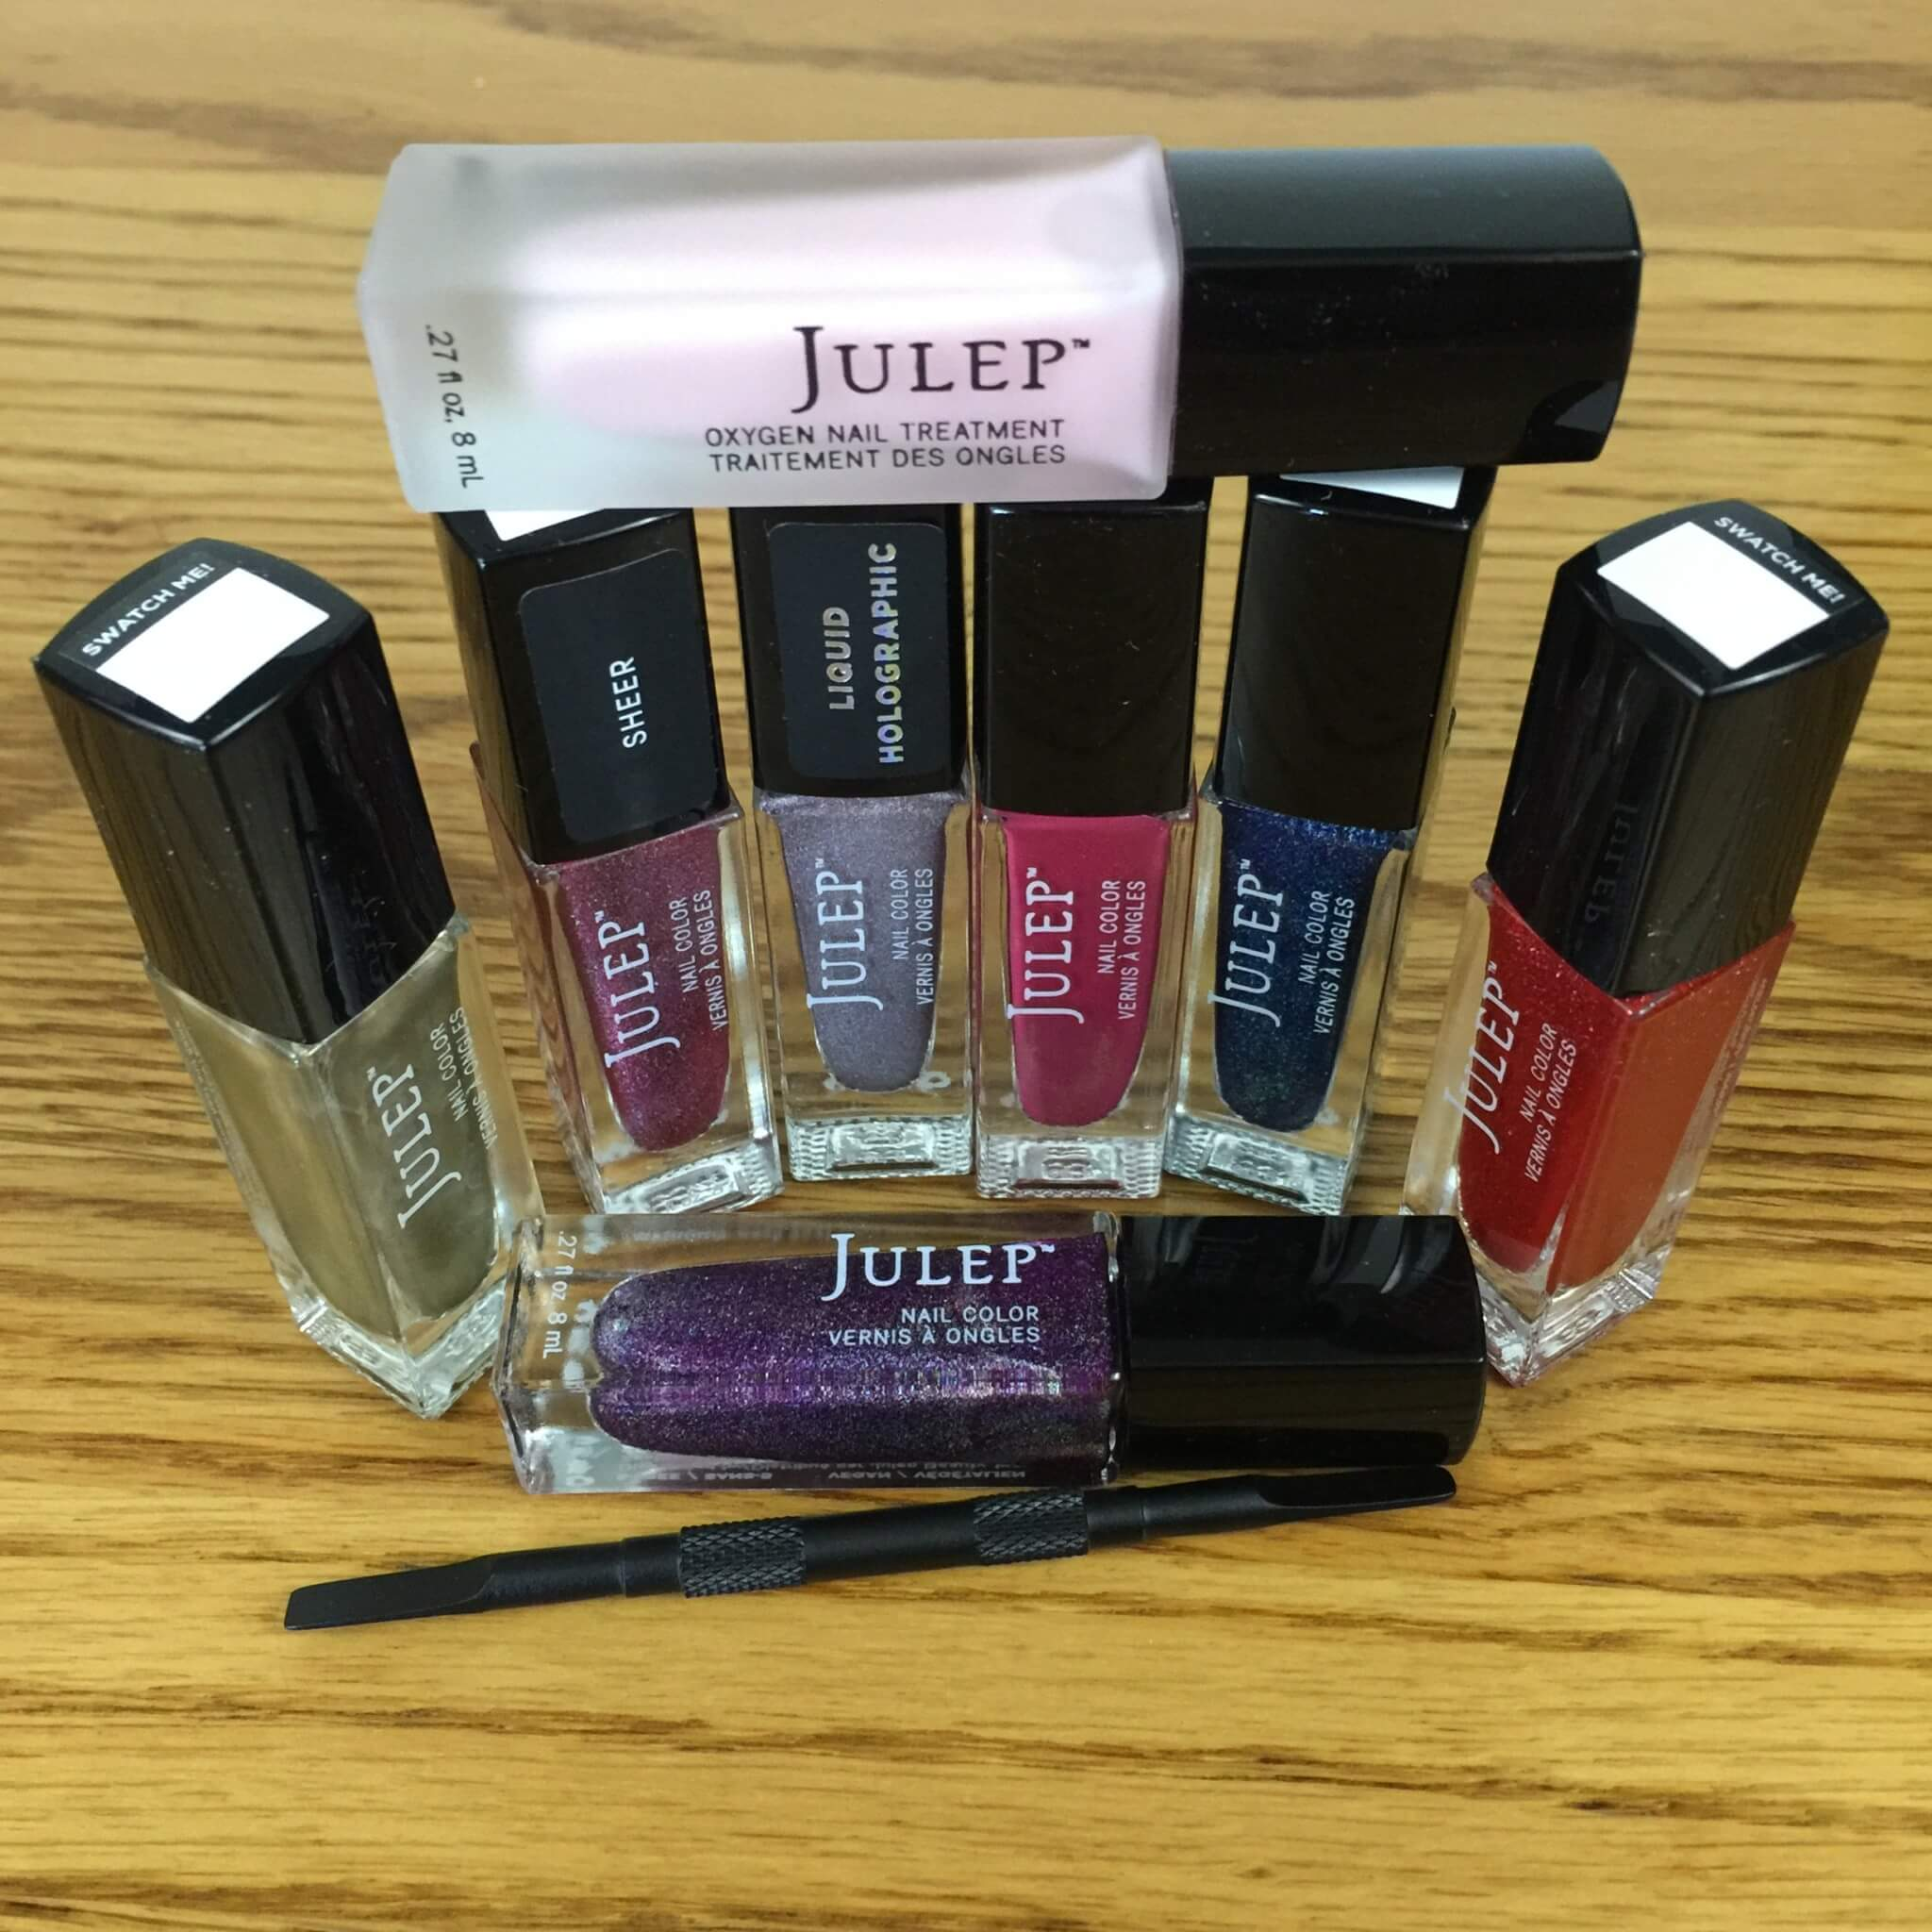 Julep Beauty Box August 2016 Subscription Box Review + Coupons